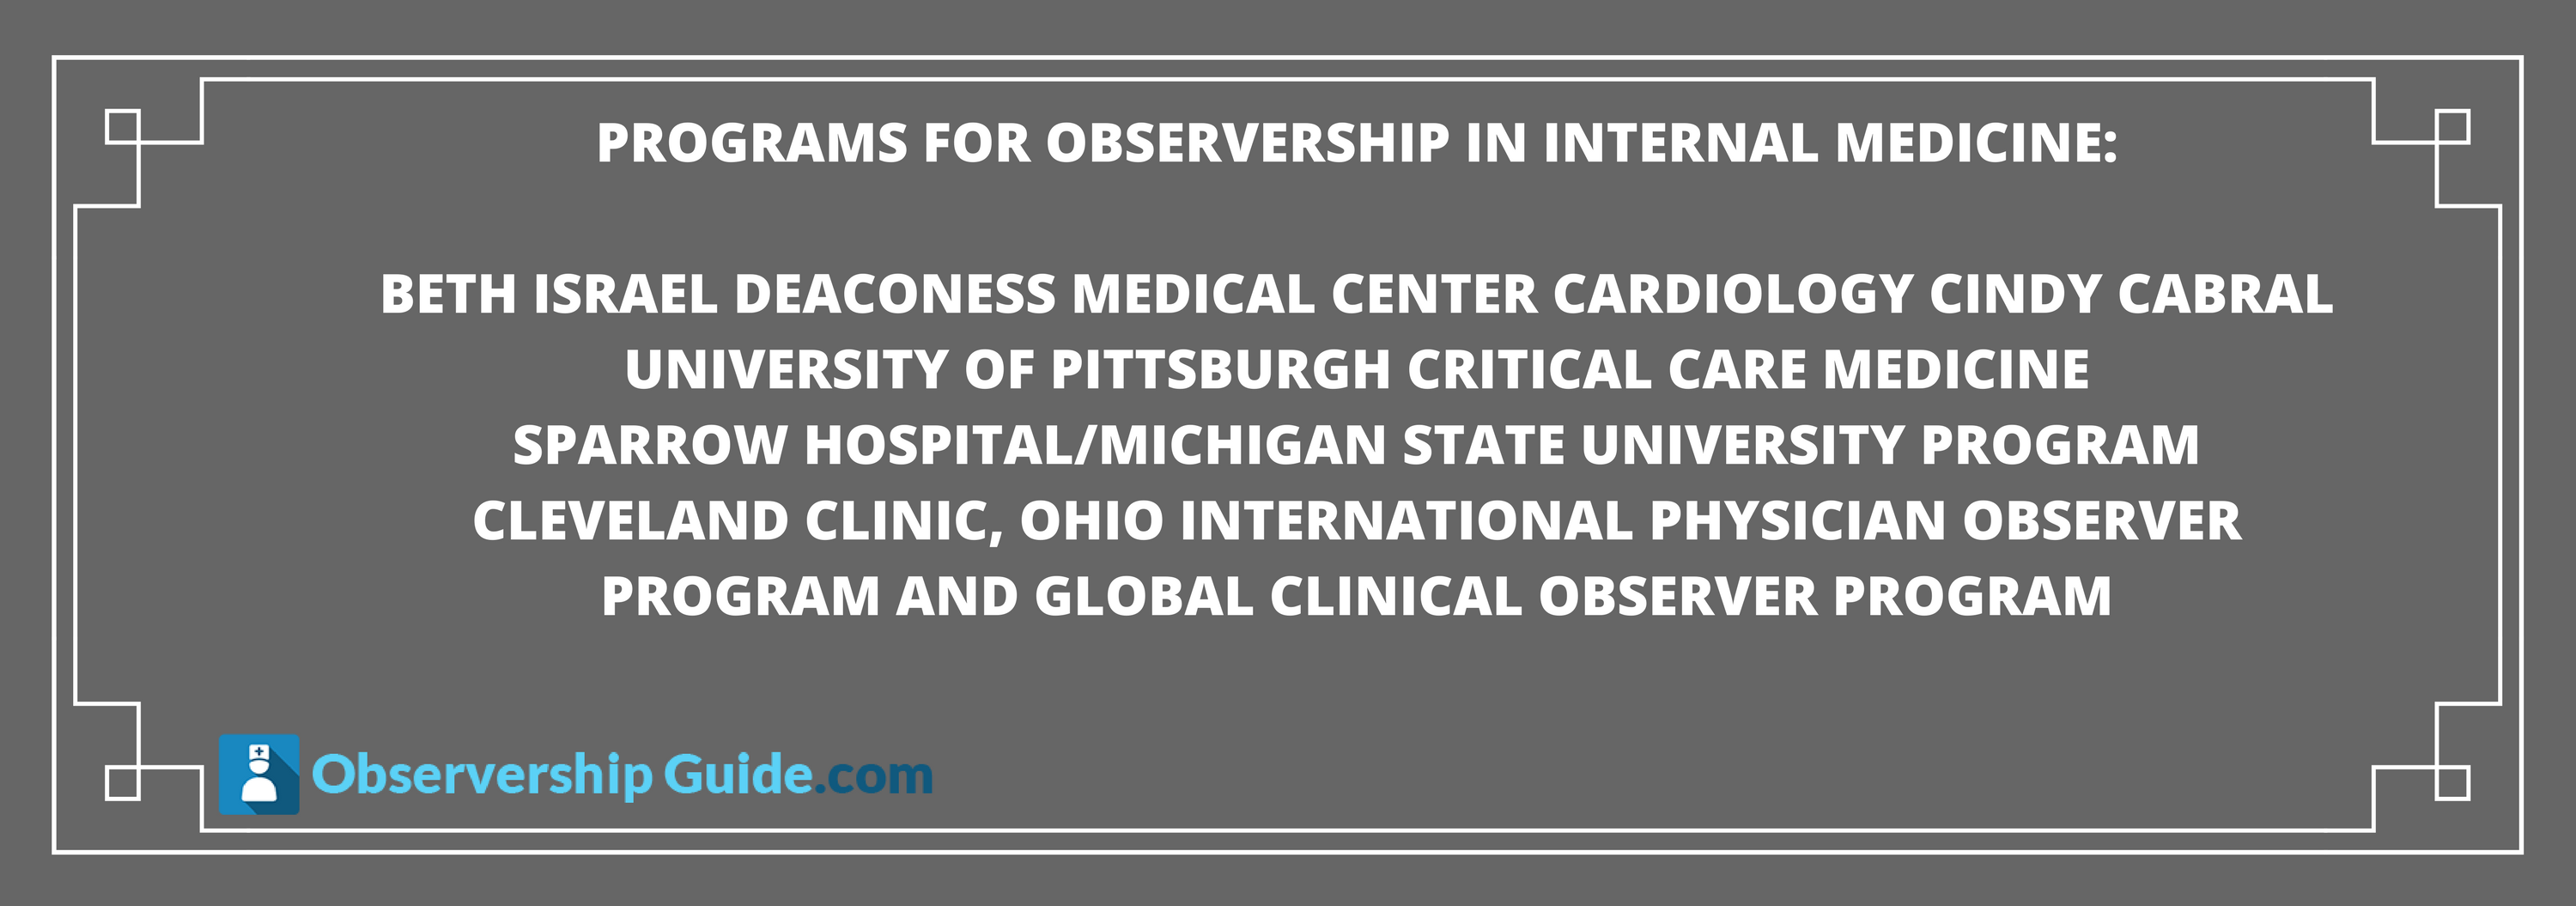 programs for Observership in Internal Medicine